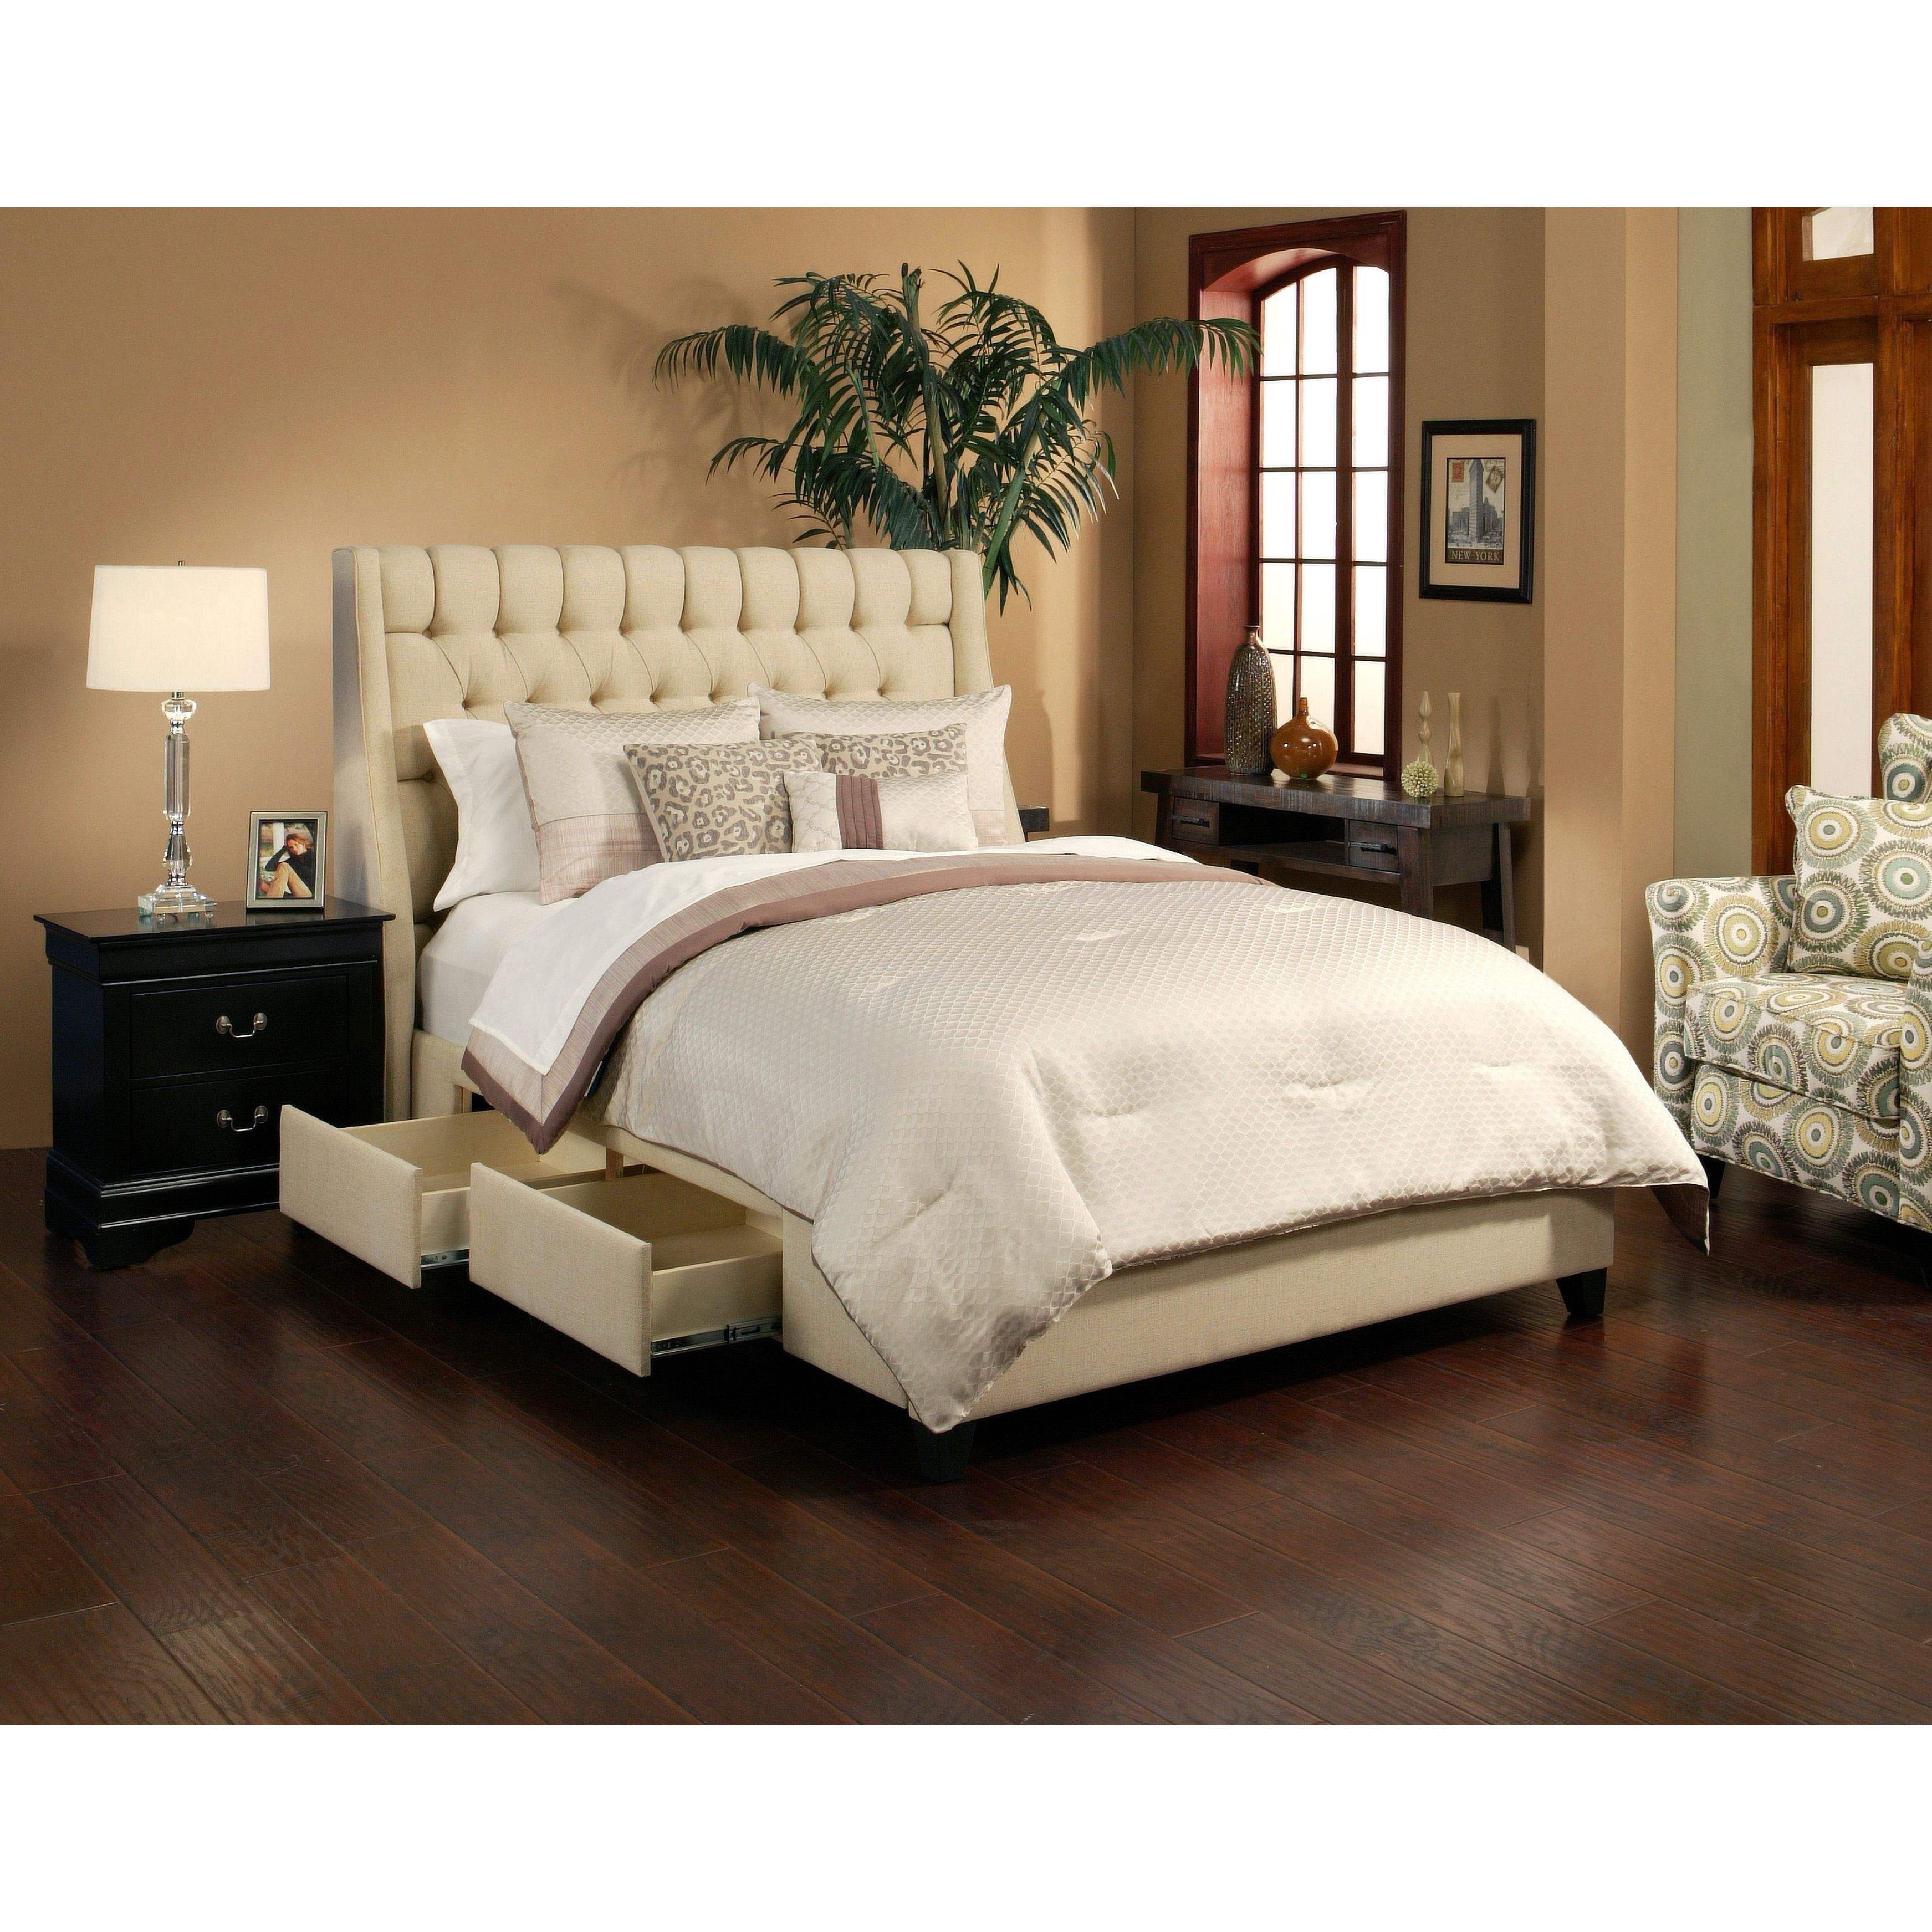 The Cambridge platform storage bed with 4 drawers has a designer headboard upholstered and in sturdy  sc 1 st  Pinterest & The Cambridge platform storage bed with 4 drawers has a designer ...